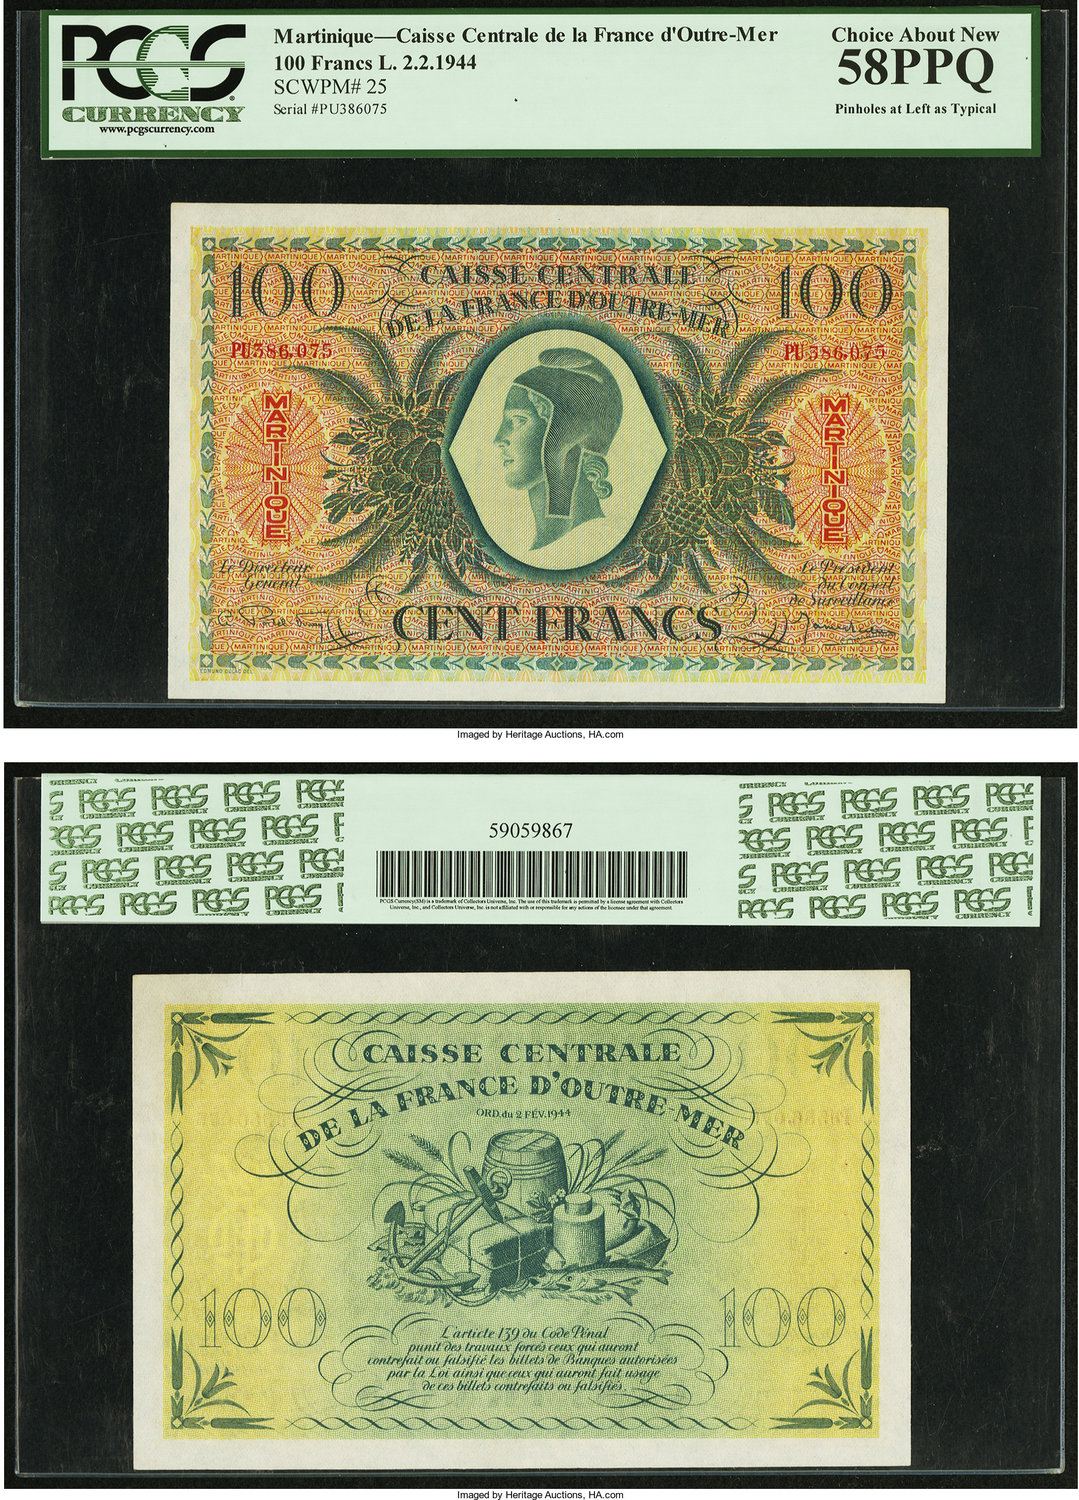 World Currency Martinique Caisse Centrale De La France D Outre Mer 100 Francs 2 1944 Pick 25 Notes Issued For